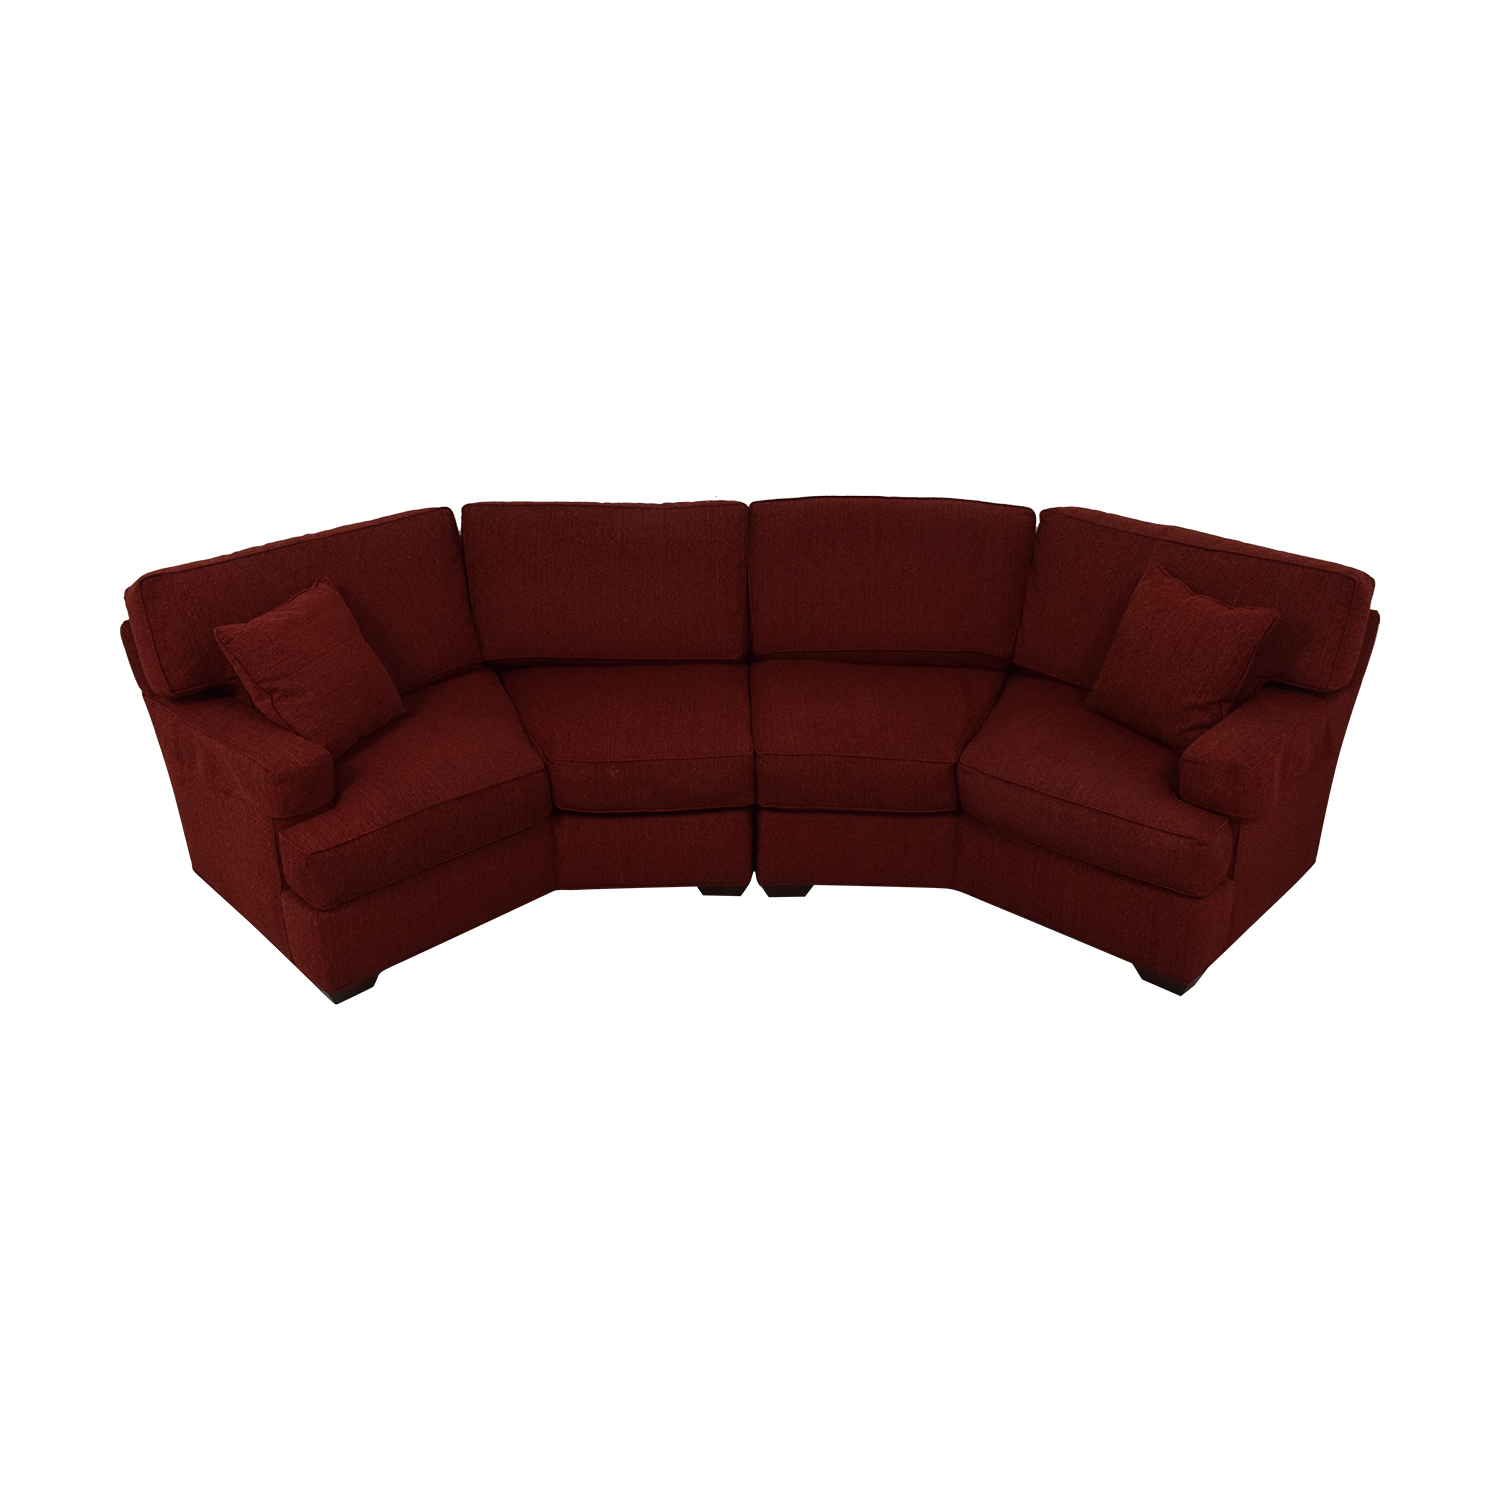 89% OFF - Pearson Pearson Red Wedge Sectional Sofa / Sofas